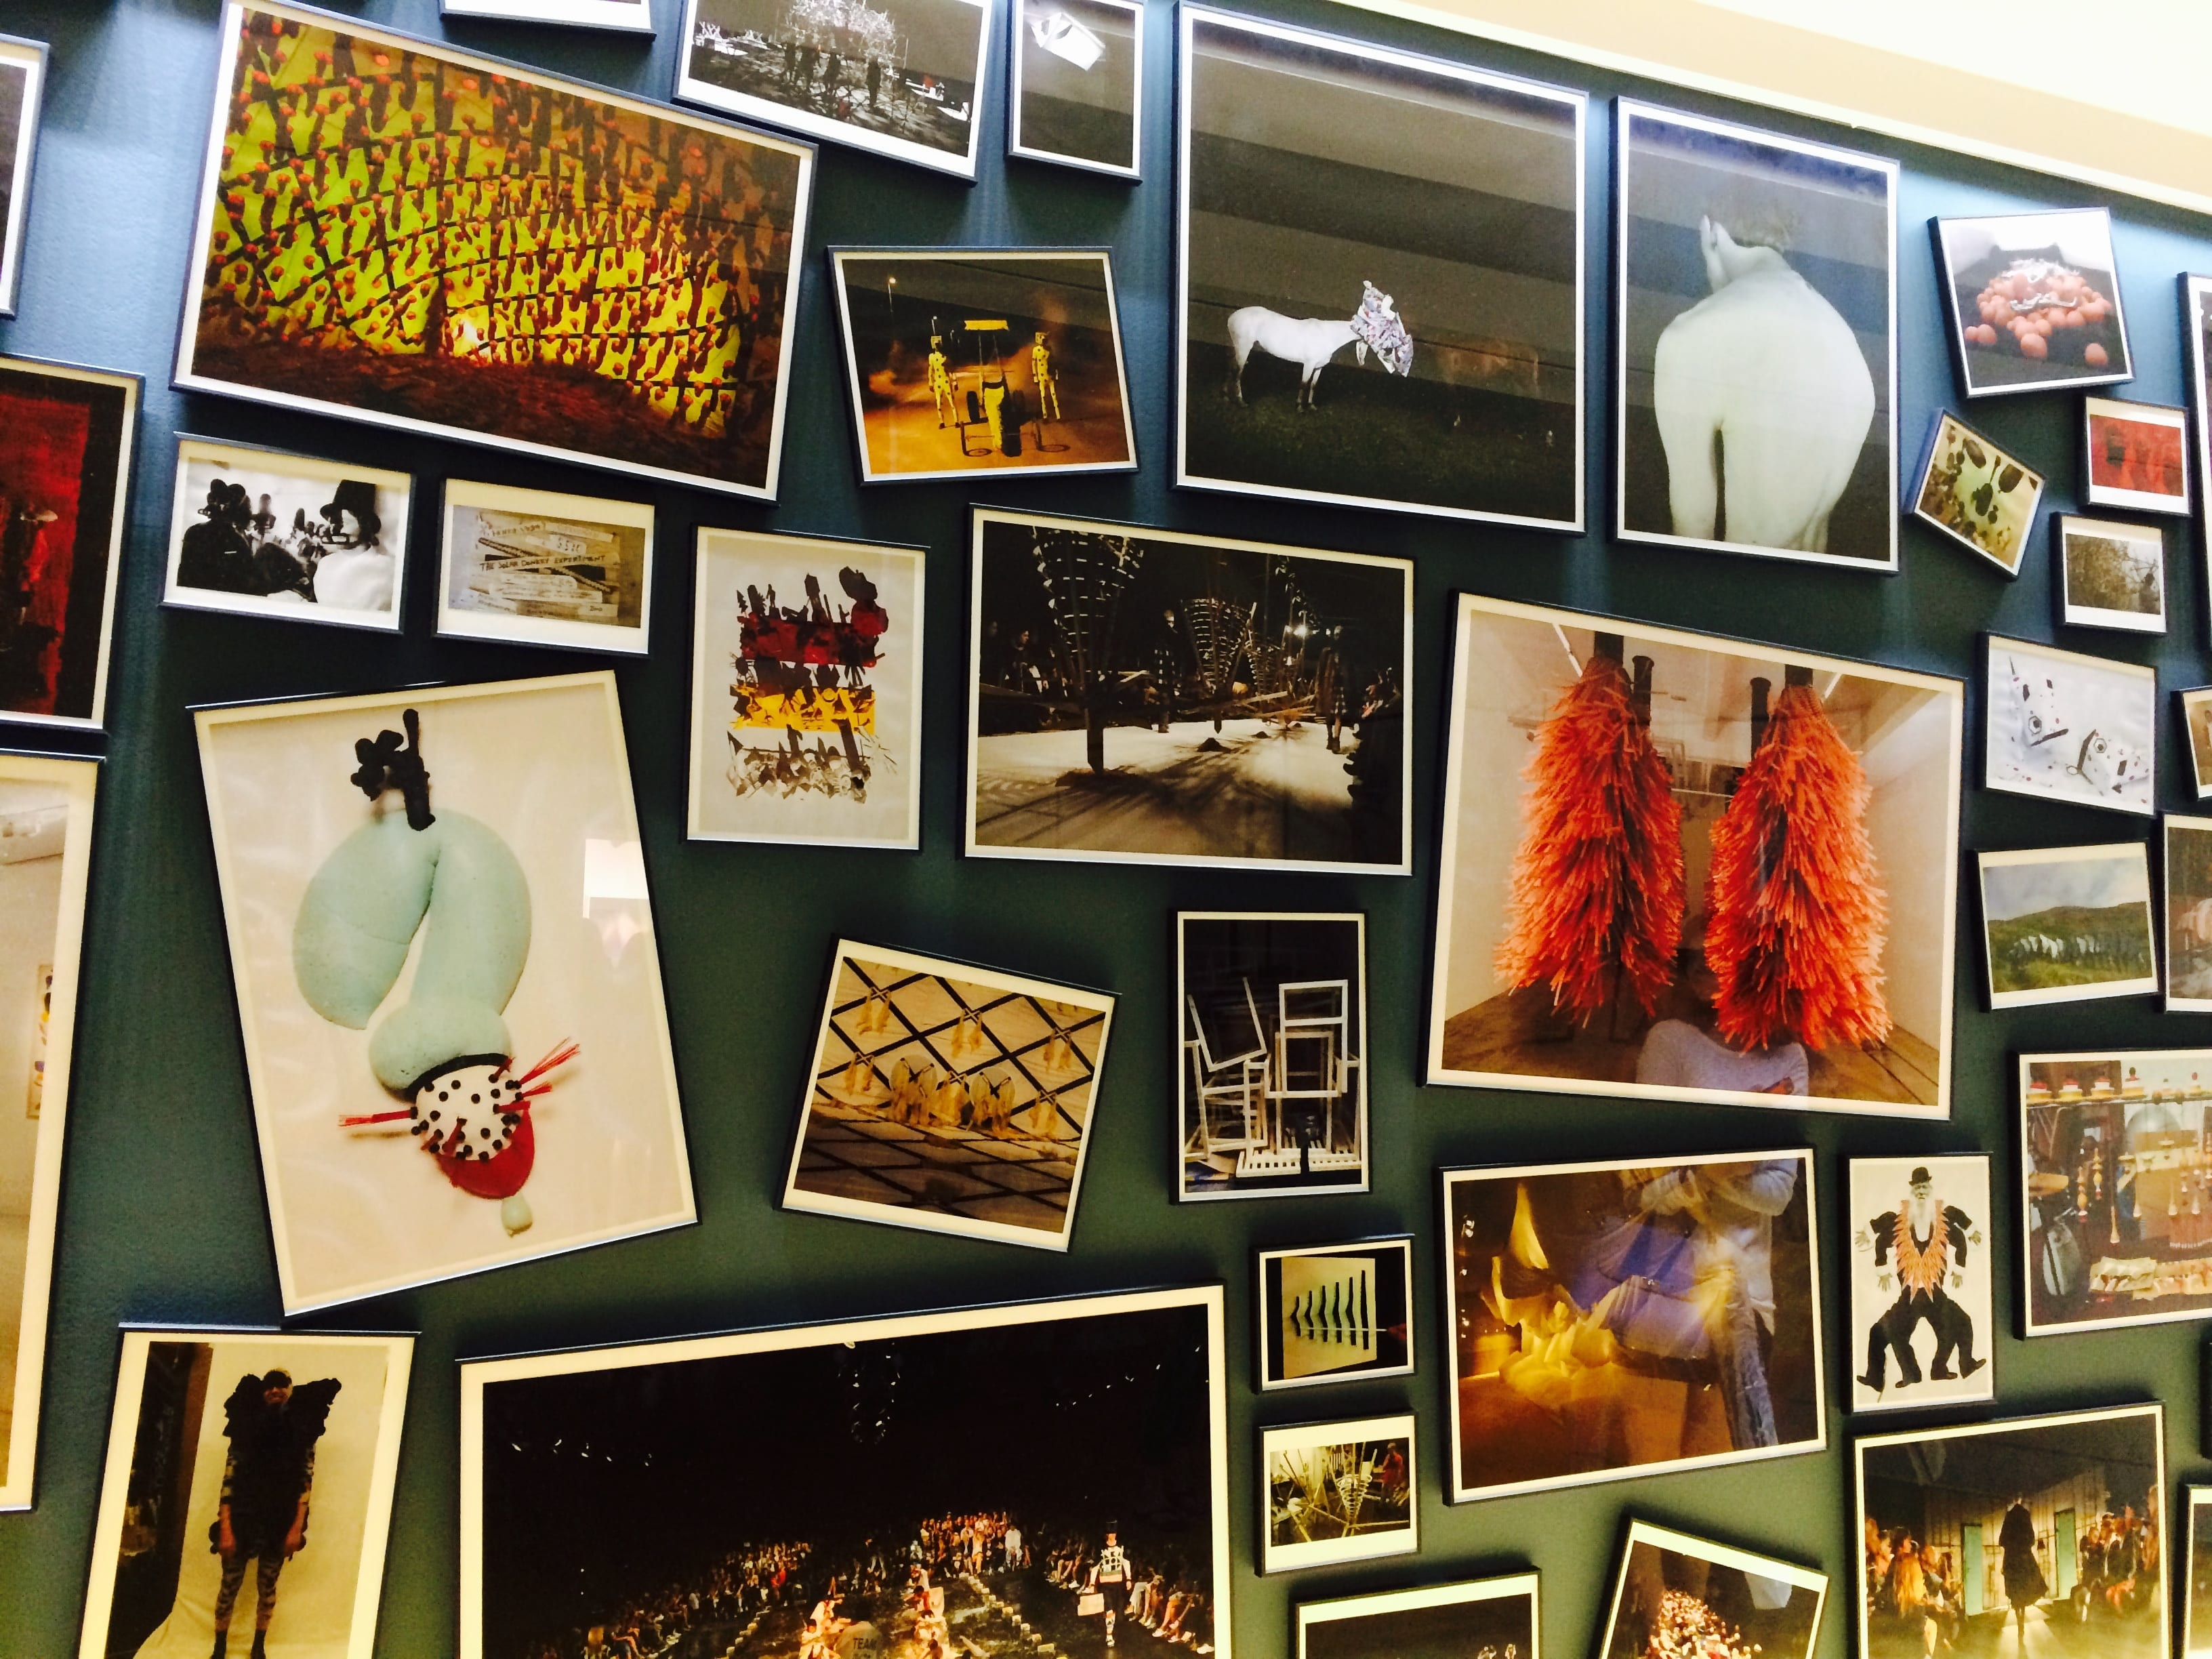 Photography Exhibit at Morton May Foundation Gallery